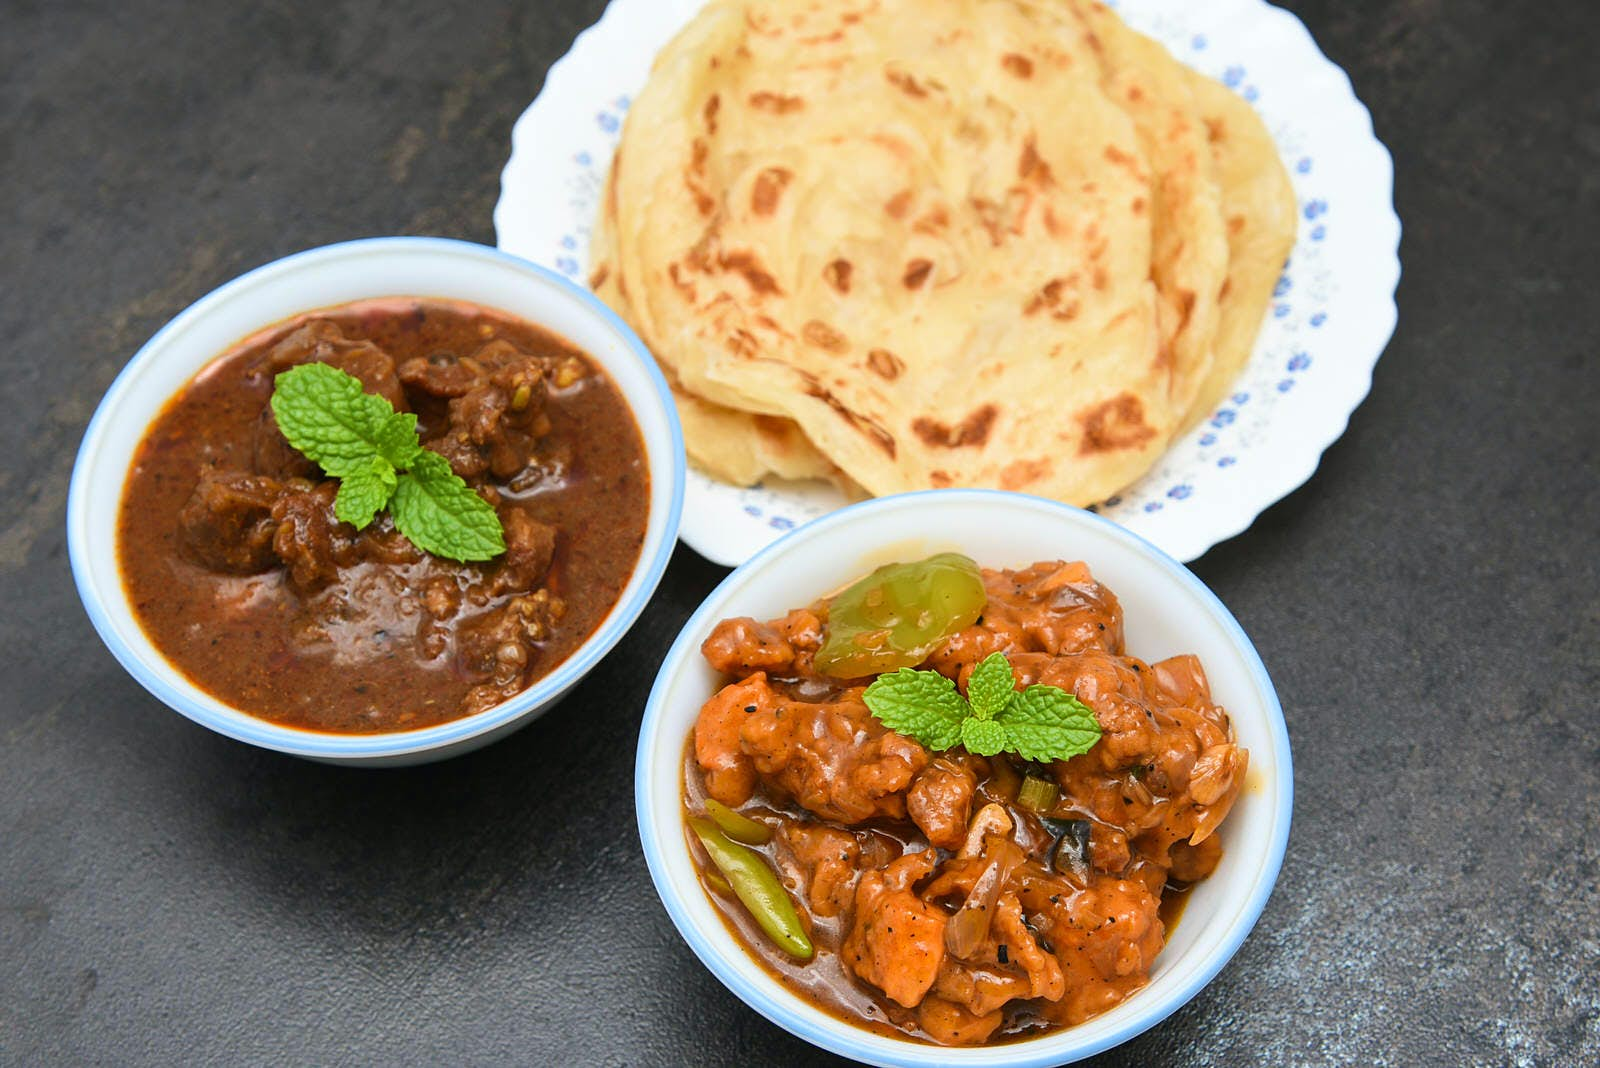 A selection of Indian dishes including beef curry and a plate of chapatis